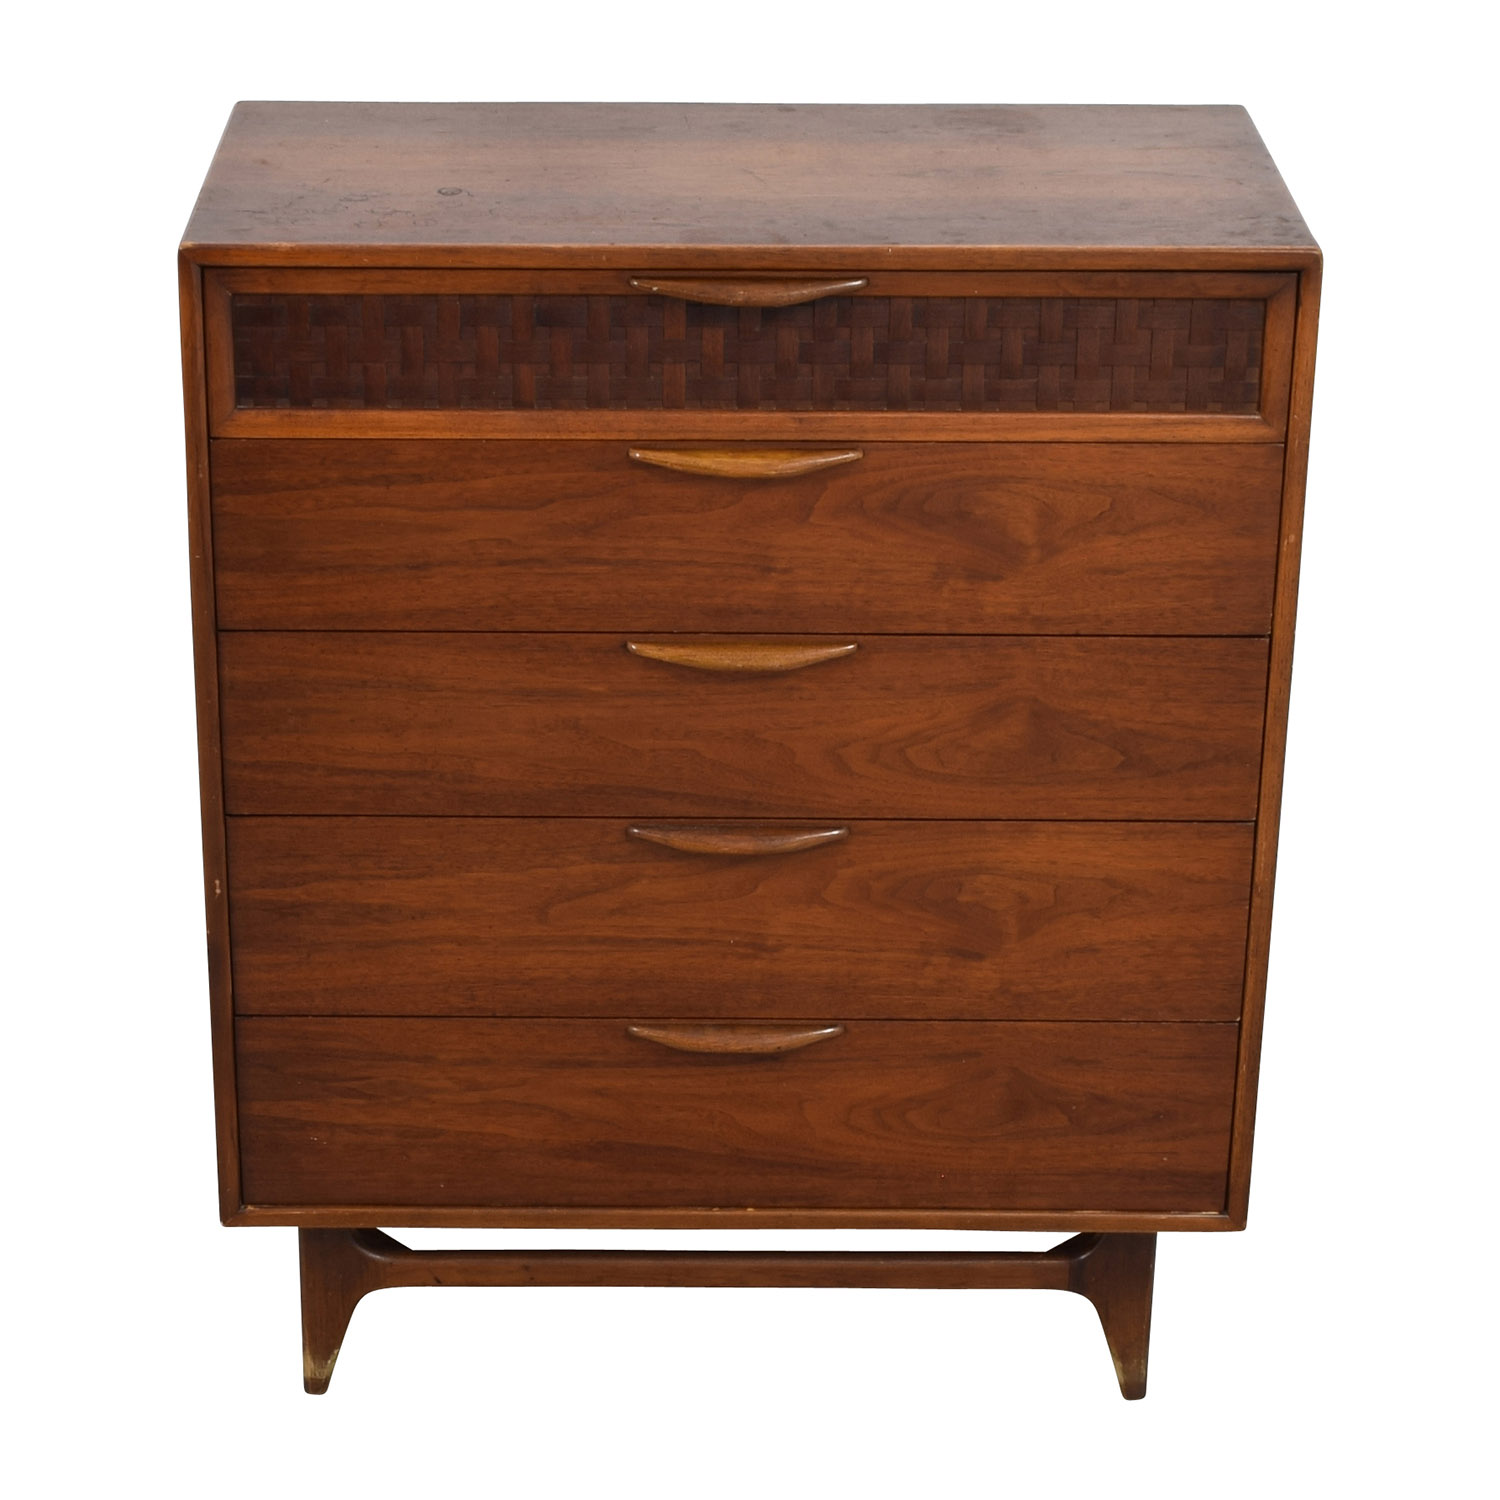 buy Vintage Mid-Century Modern Five-Drawer Dresser Dressers